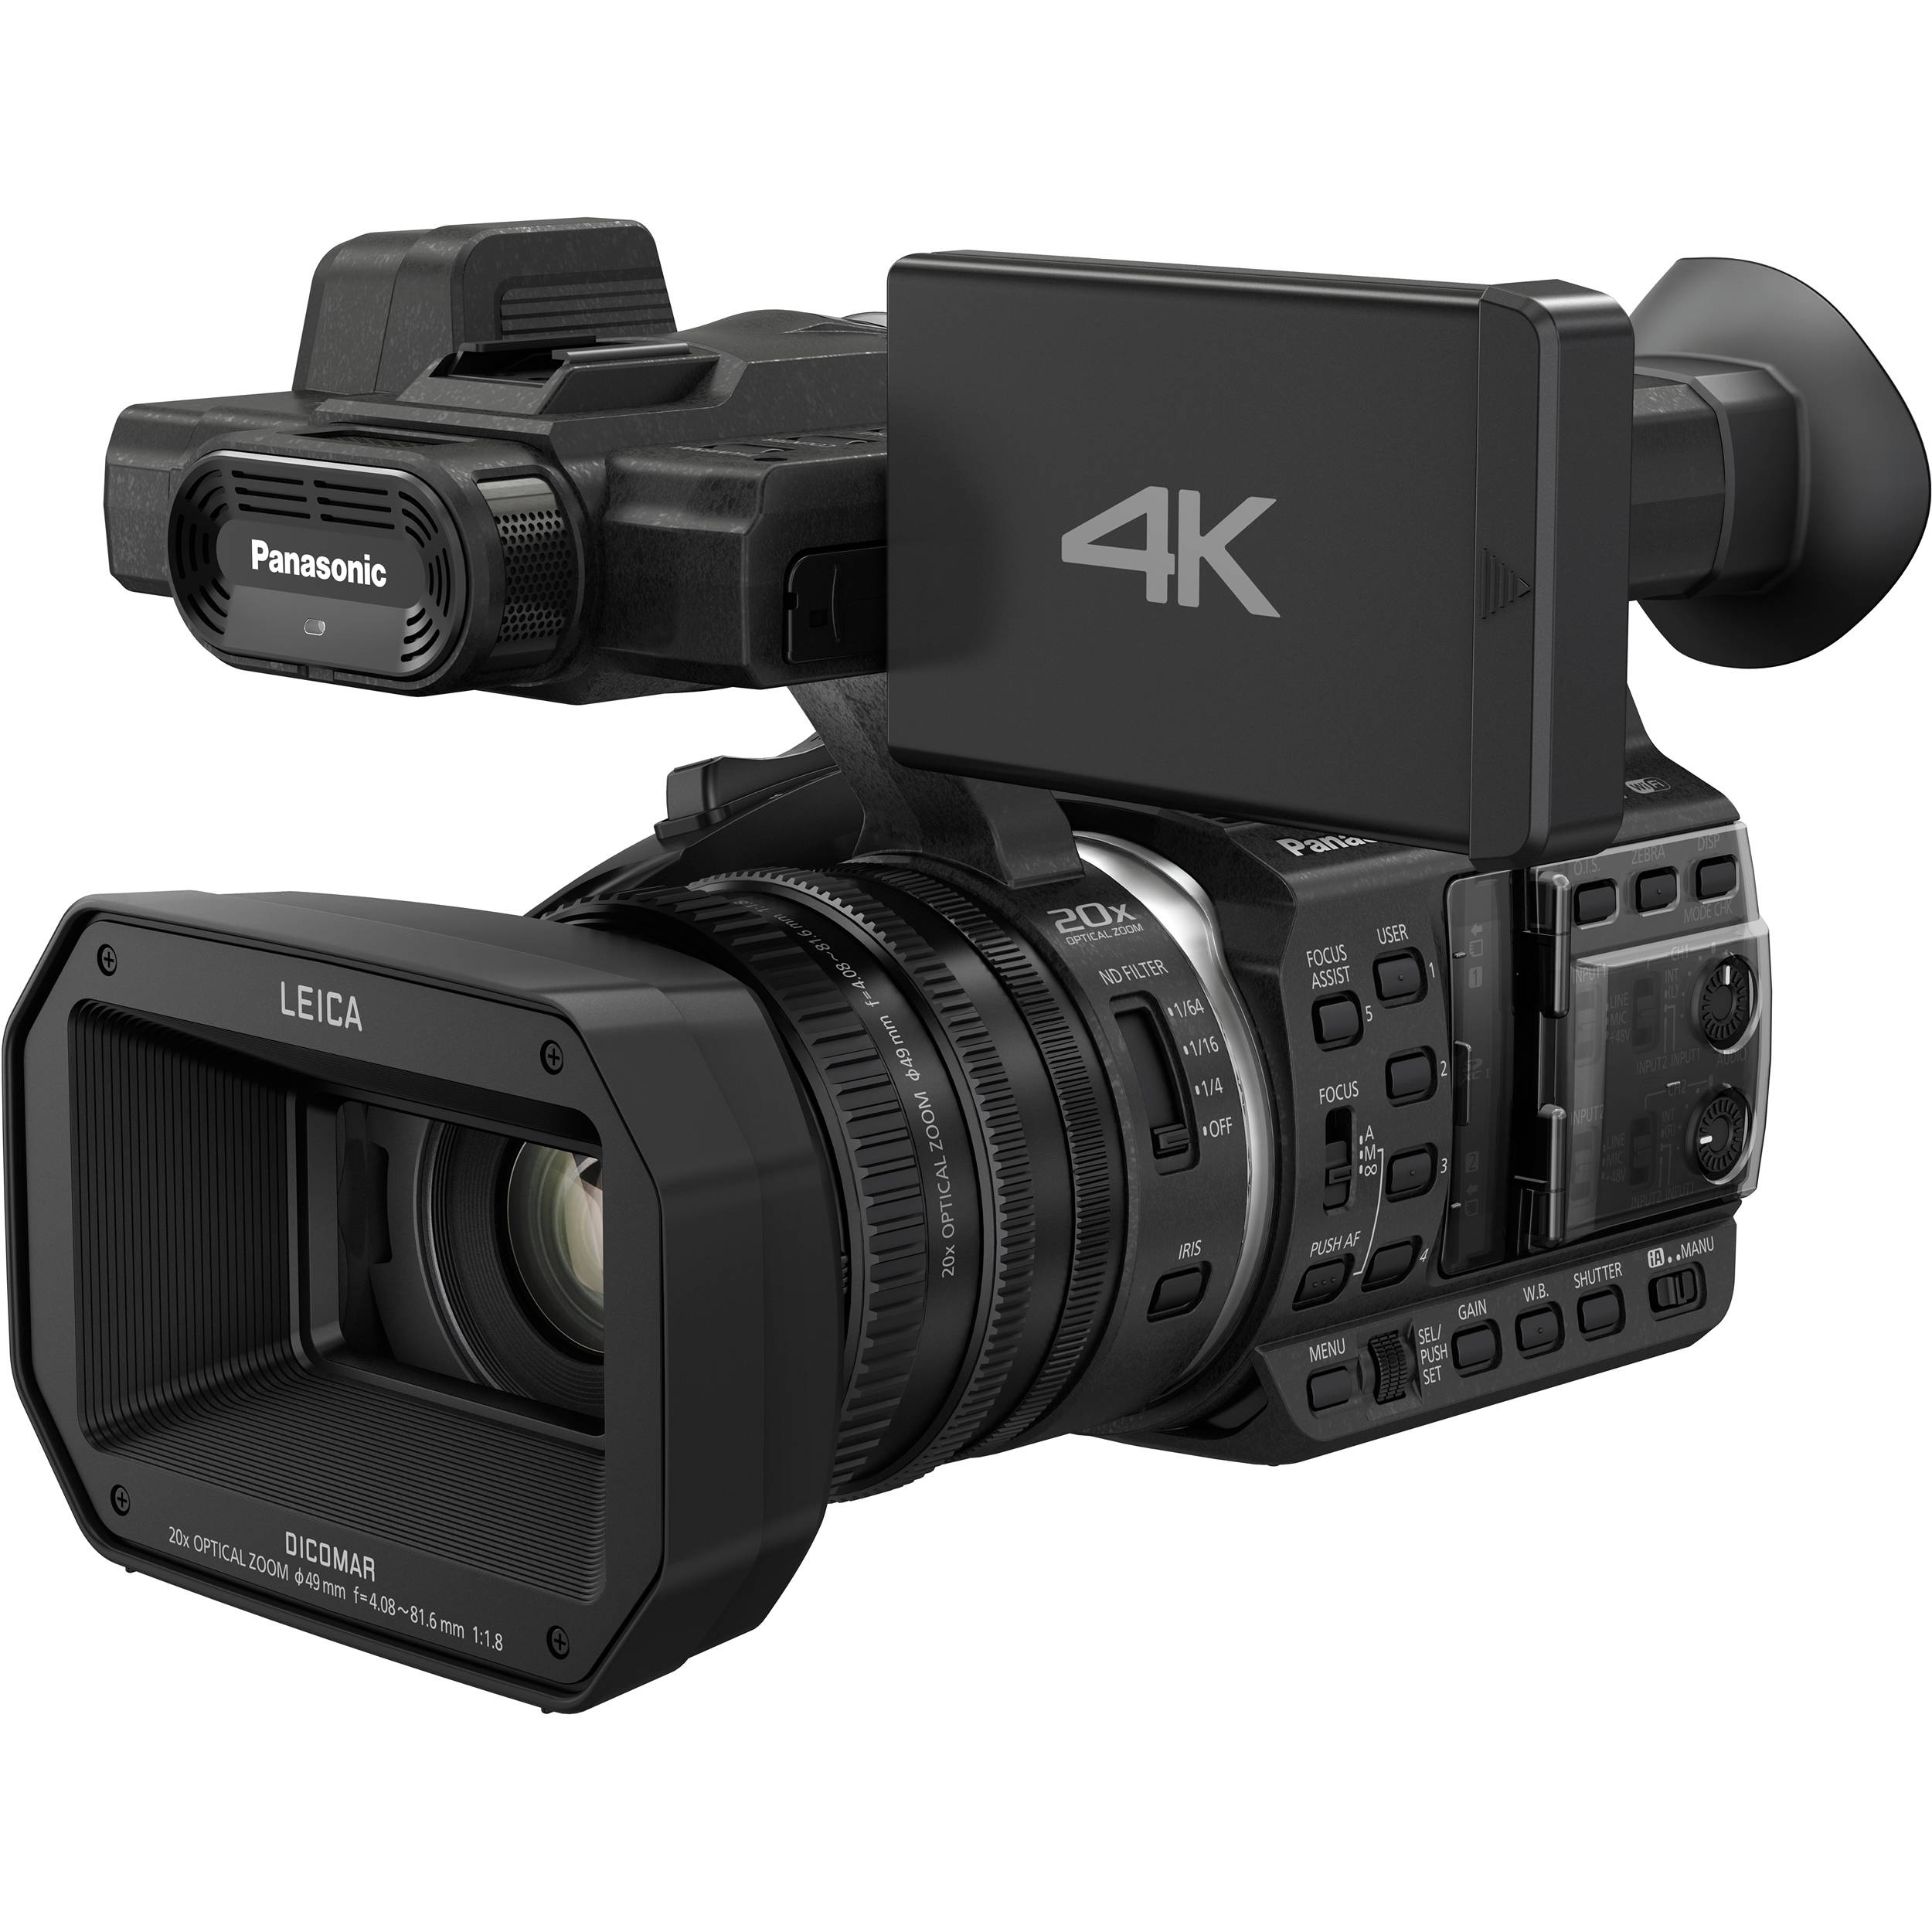 4K Ultra High Definition Camcorder_Online Camera